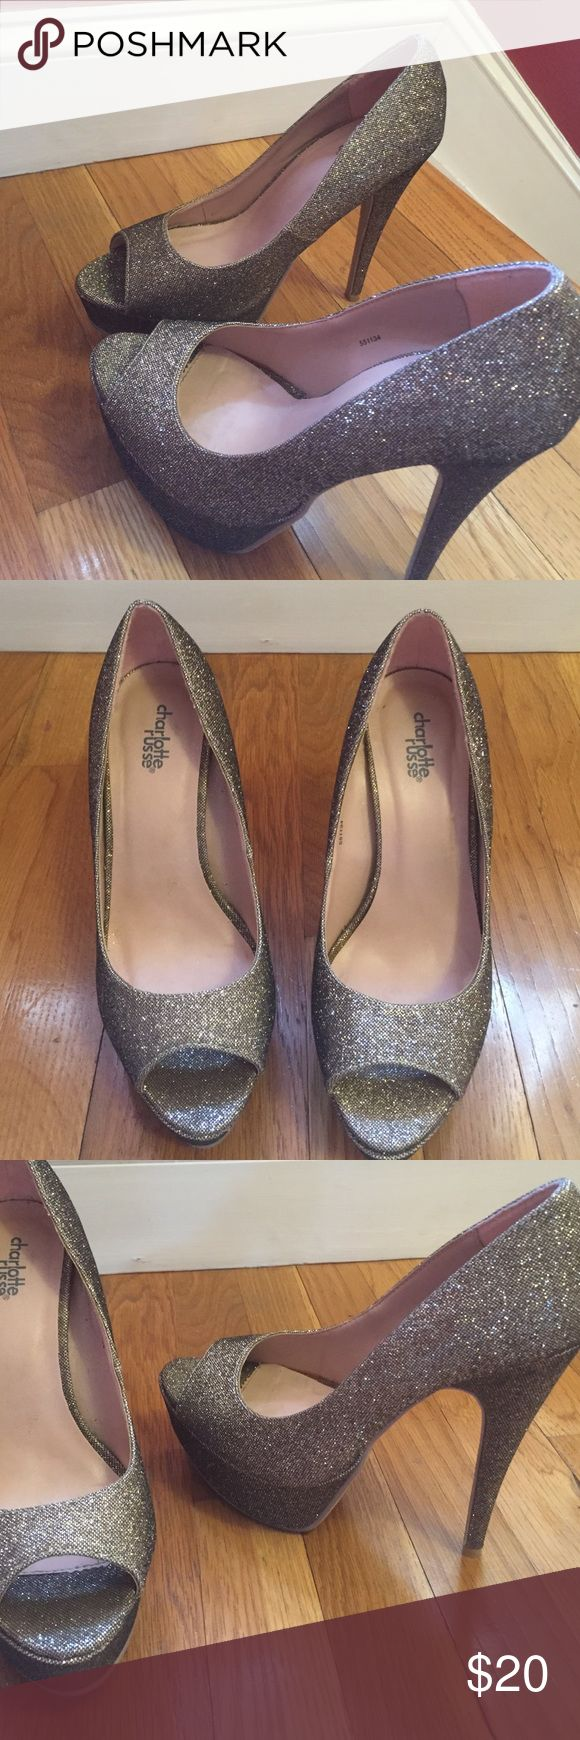 "Sparkly gold open toe heels Sexy stilettos!!! Gold shimmery gold mesh pumps! Great for prom and wedding season! Open toe with 5"" heel and a 2"" platform in the front, worn literally once!! Charlotte Russe Shoes Heels"